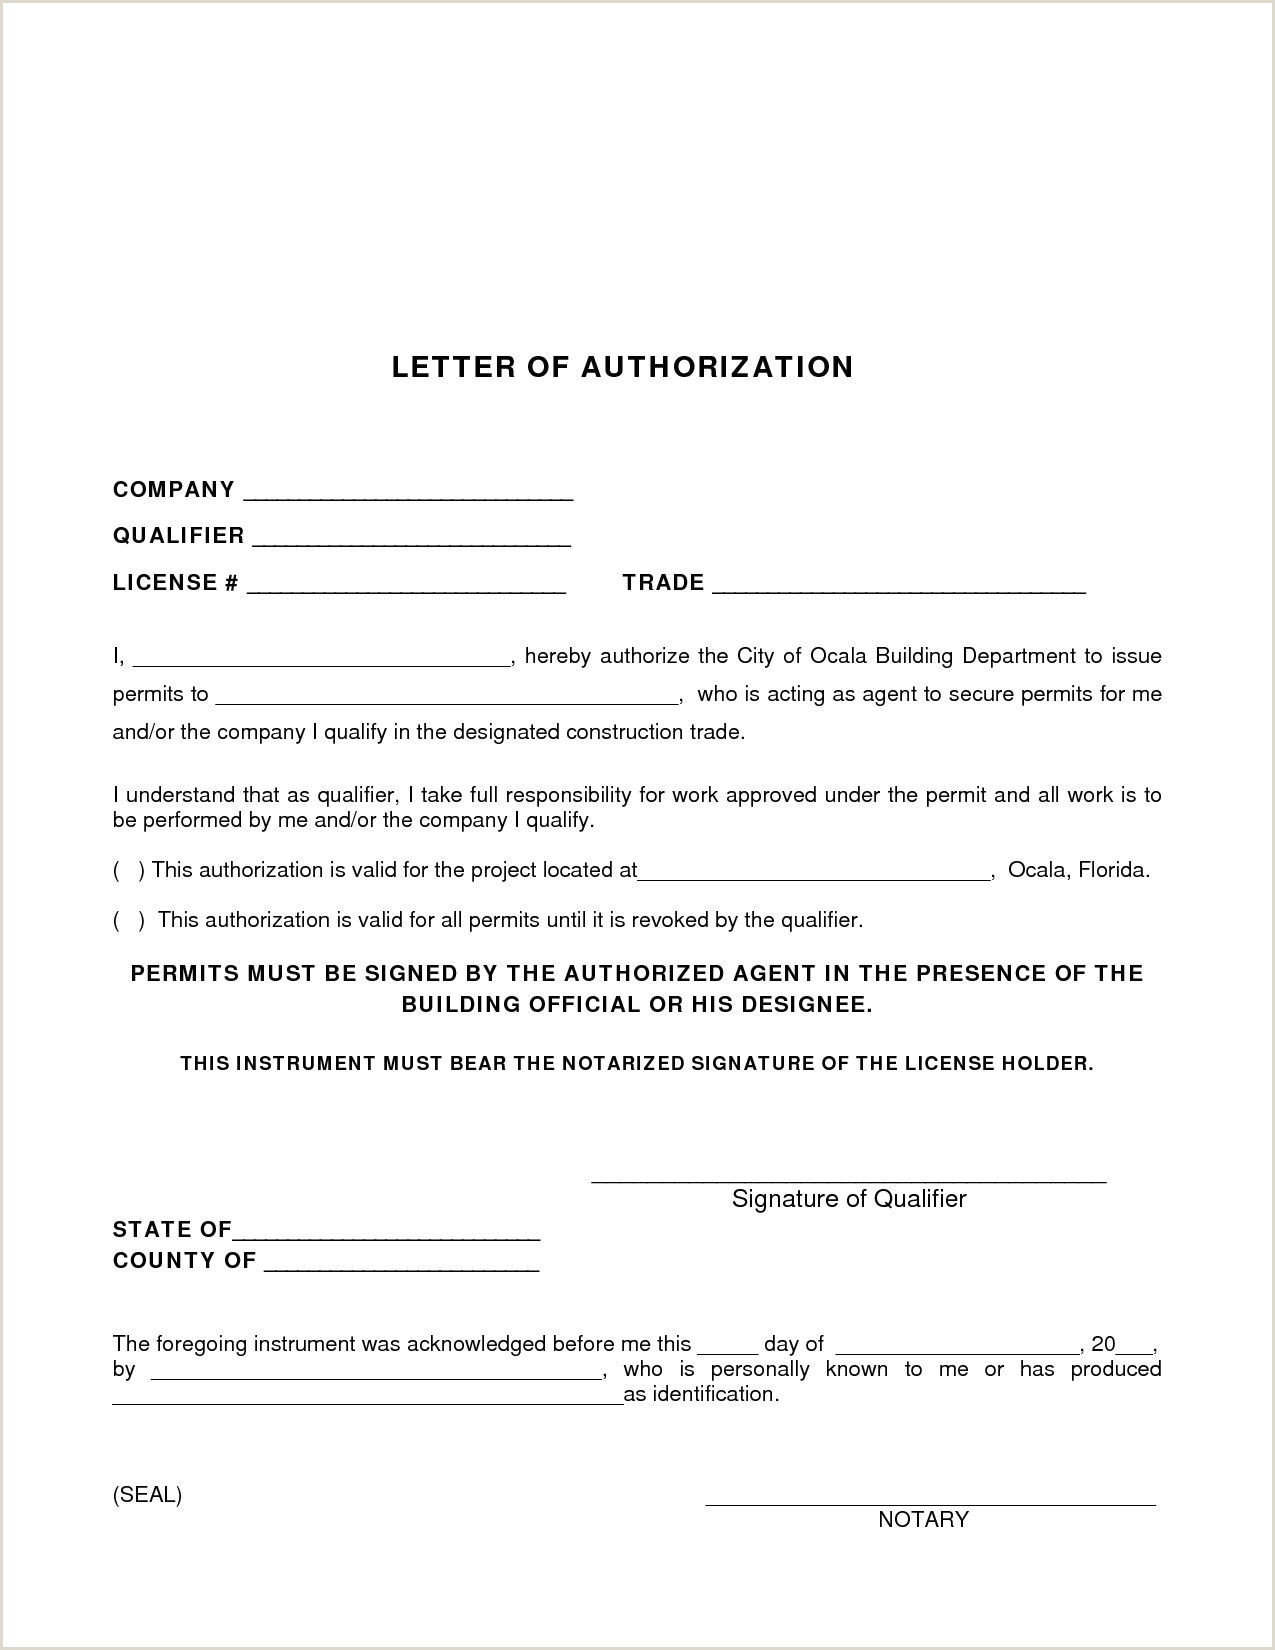 Solicitation Letter for Death You Can See This New Request Letter format for Noc From